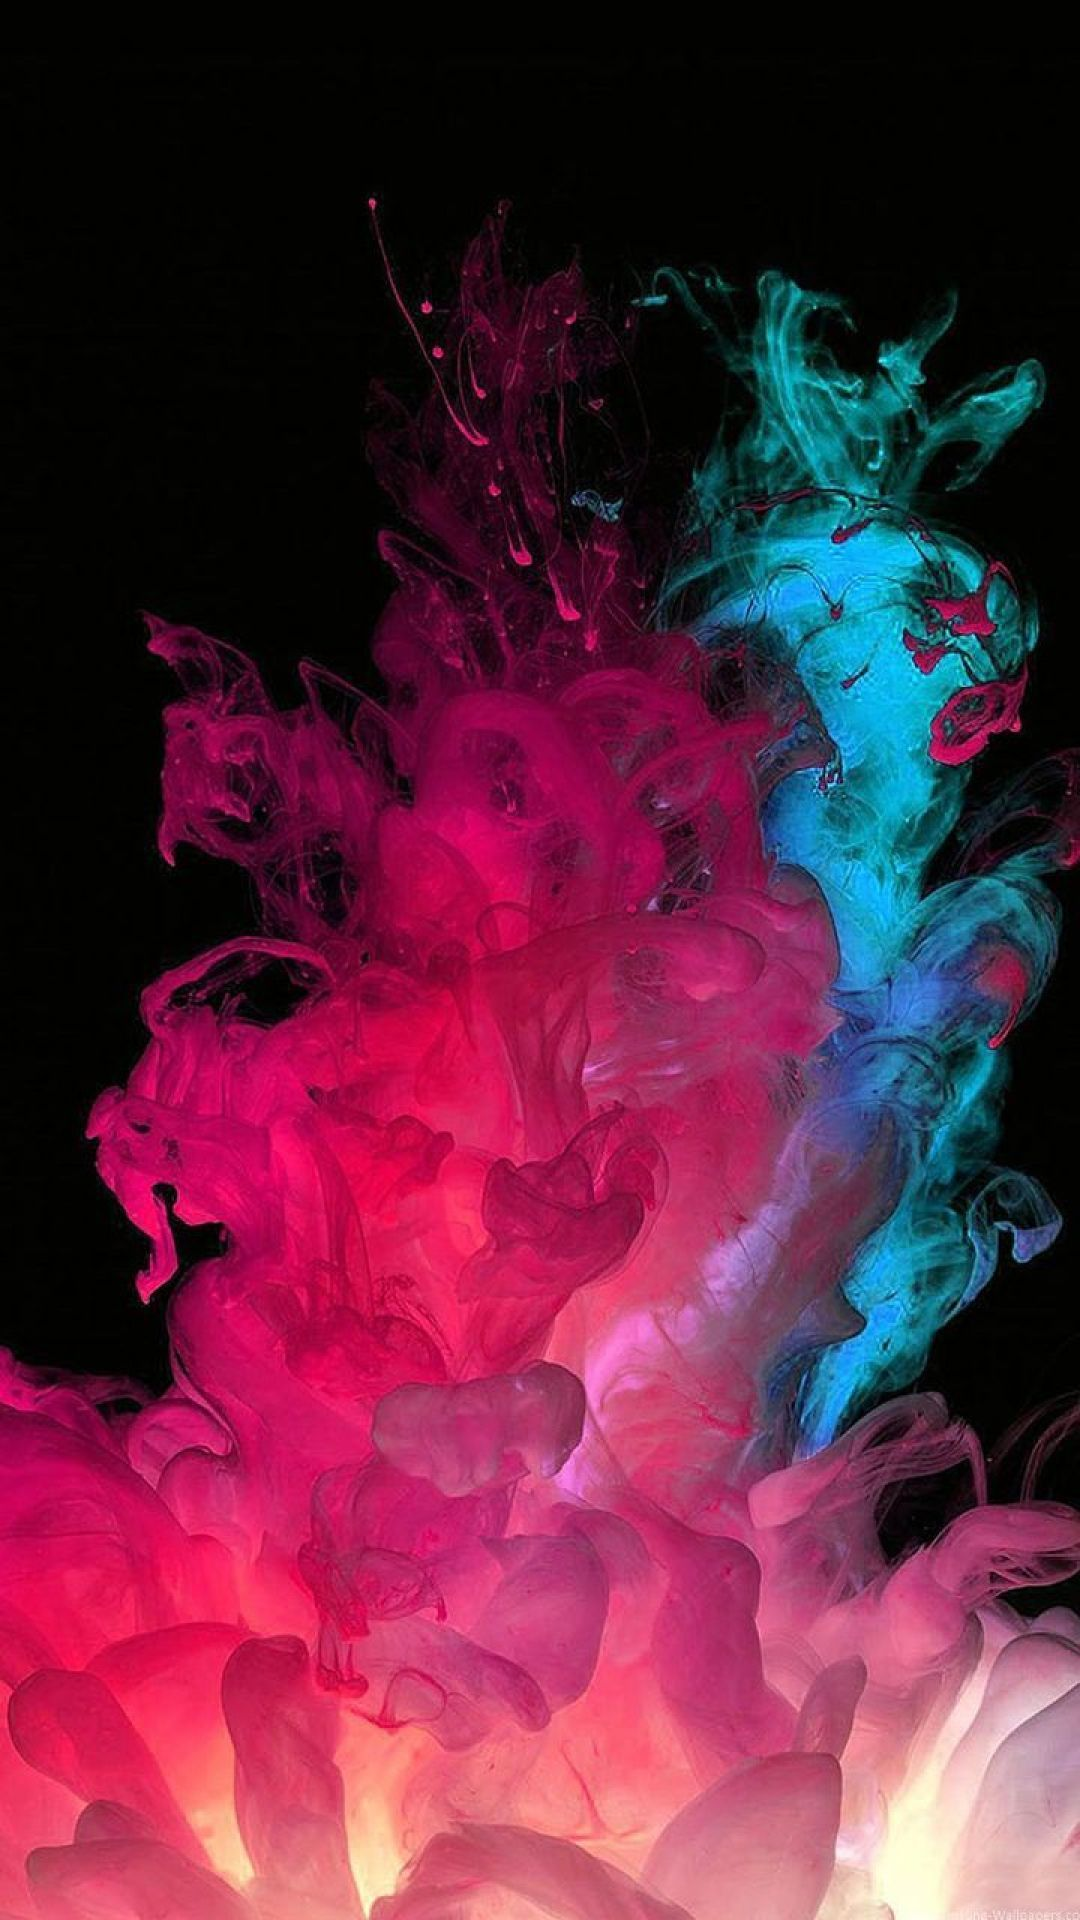 13285 3d Abstract Images Hd Photos 1080p Wallpapers